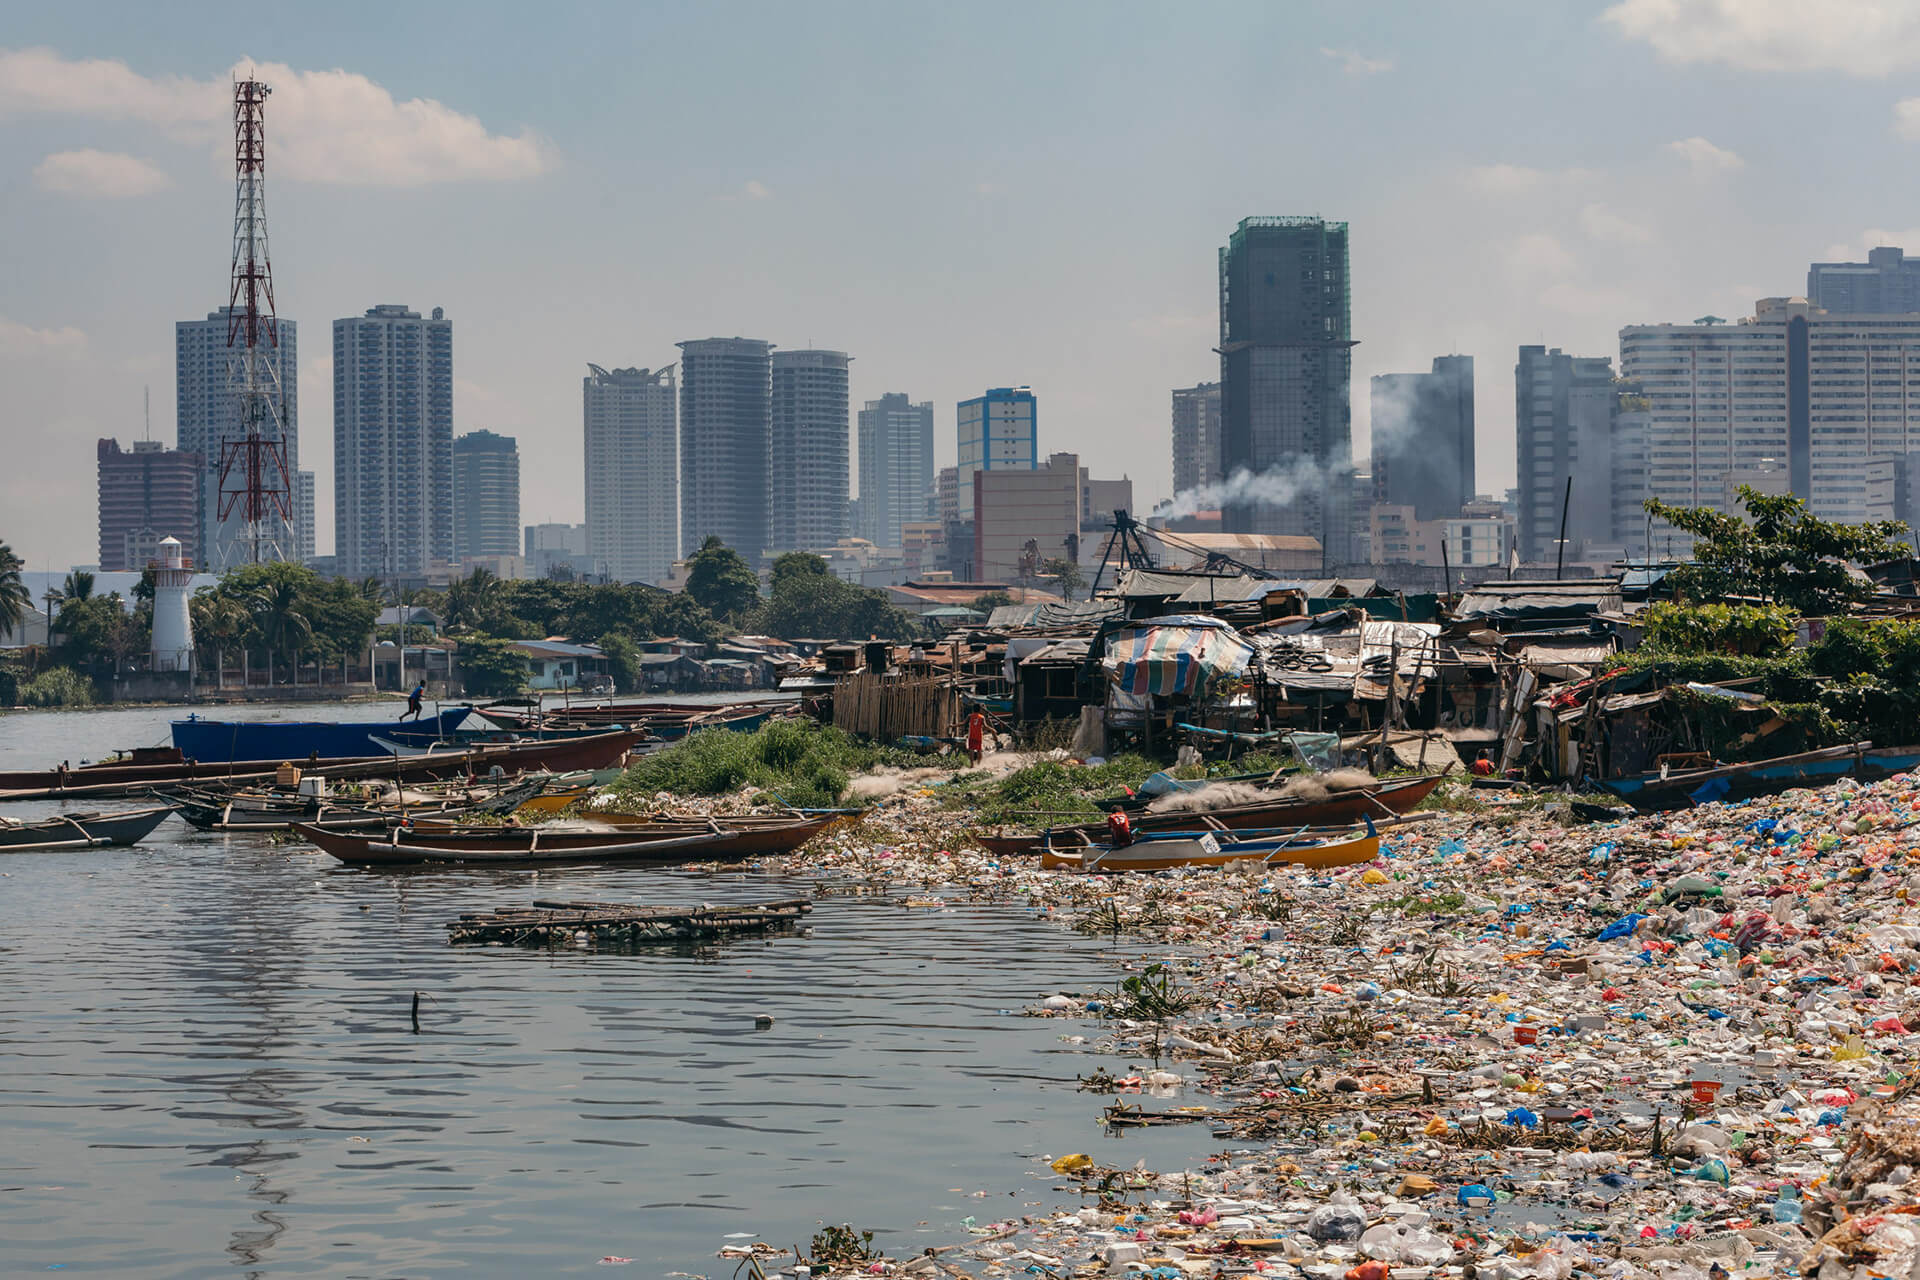 Pools of trash have collected along the banks of Manila Bay